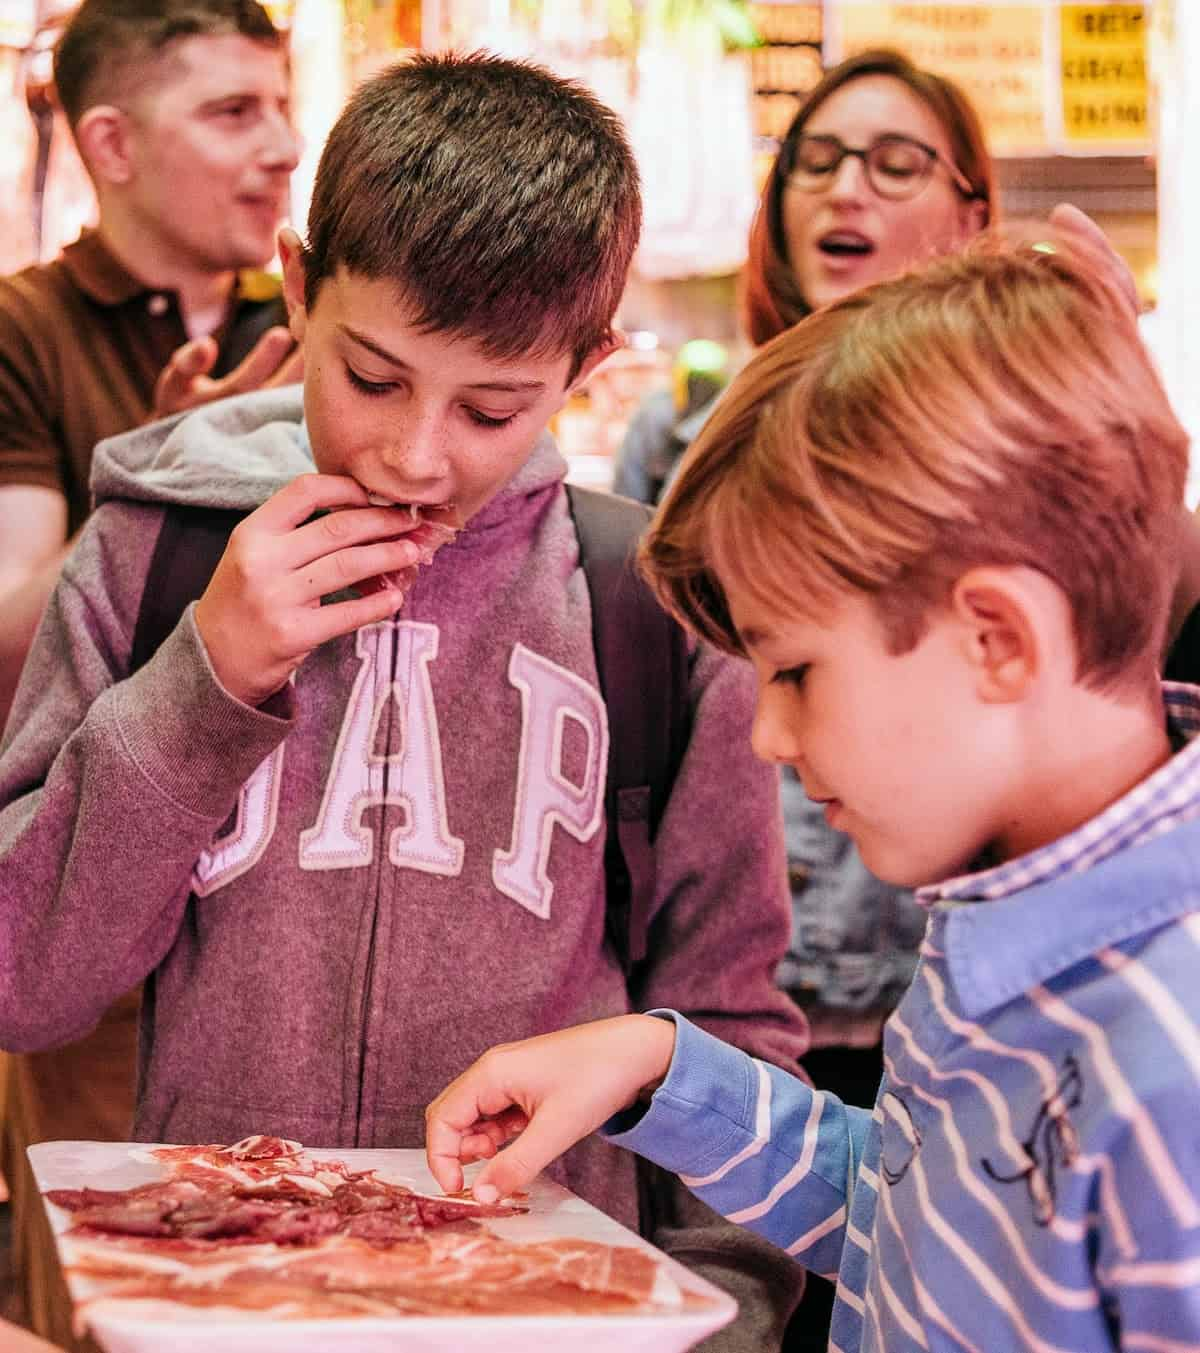 Two kids eating pieces of Spanish charcuterie off a white tray.